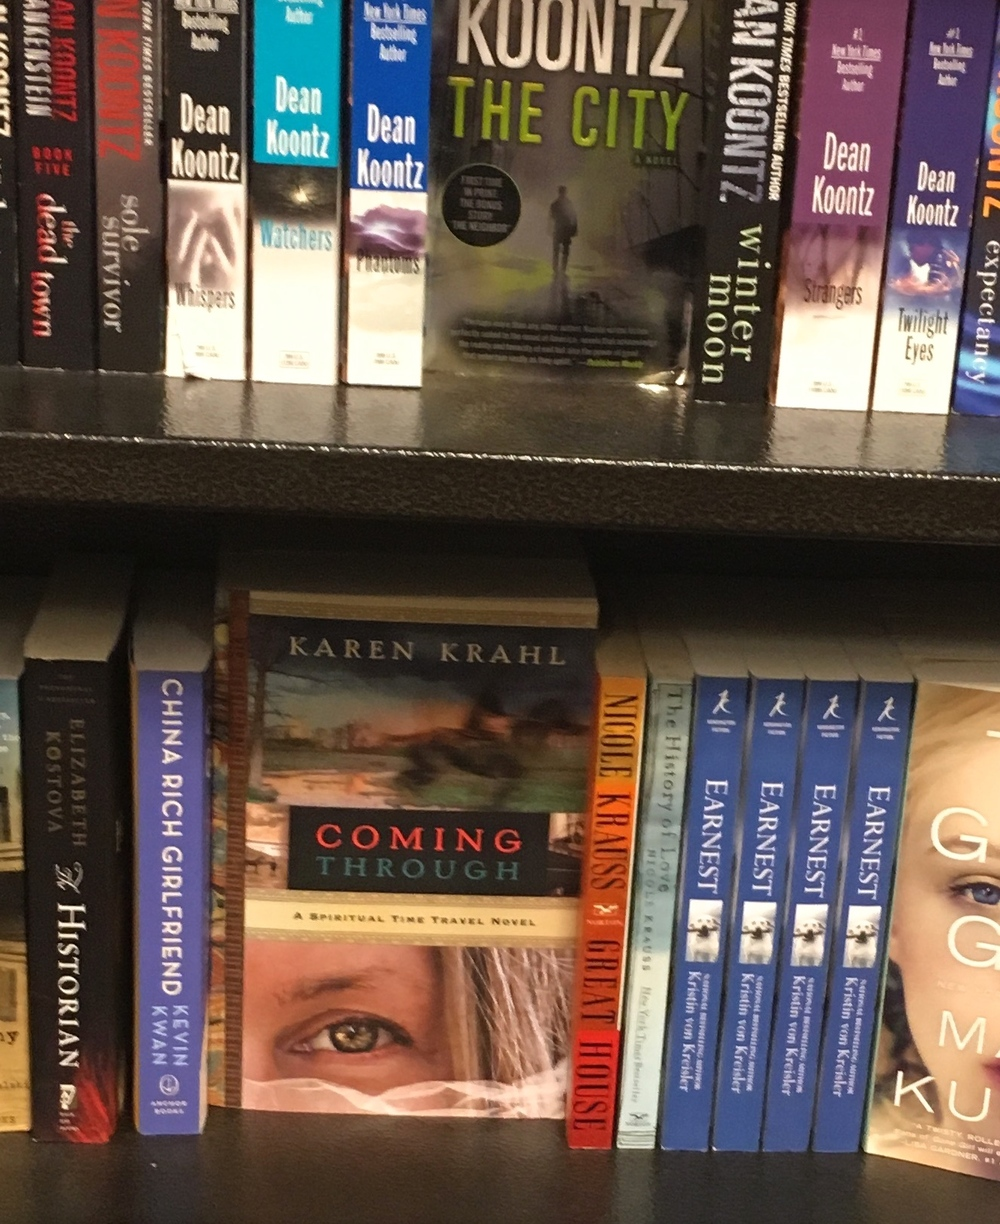 The moment when you realize you're in the Literature and Fiction department at Barnes and Nobel.